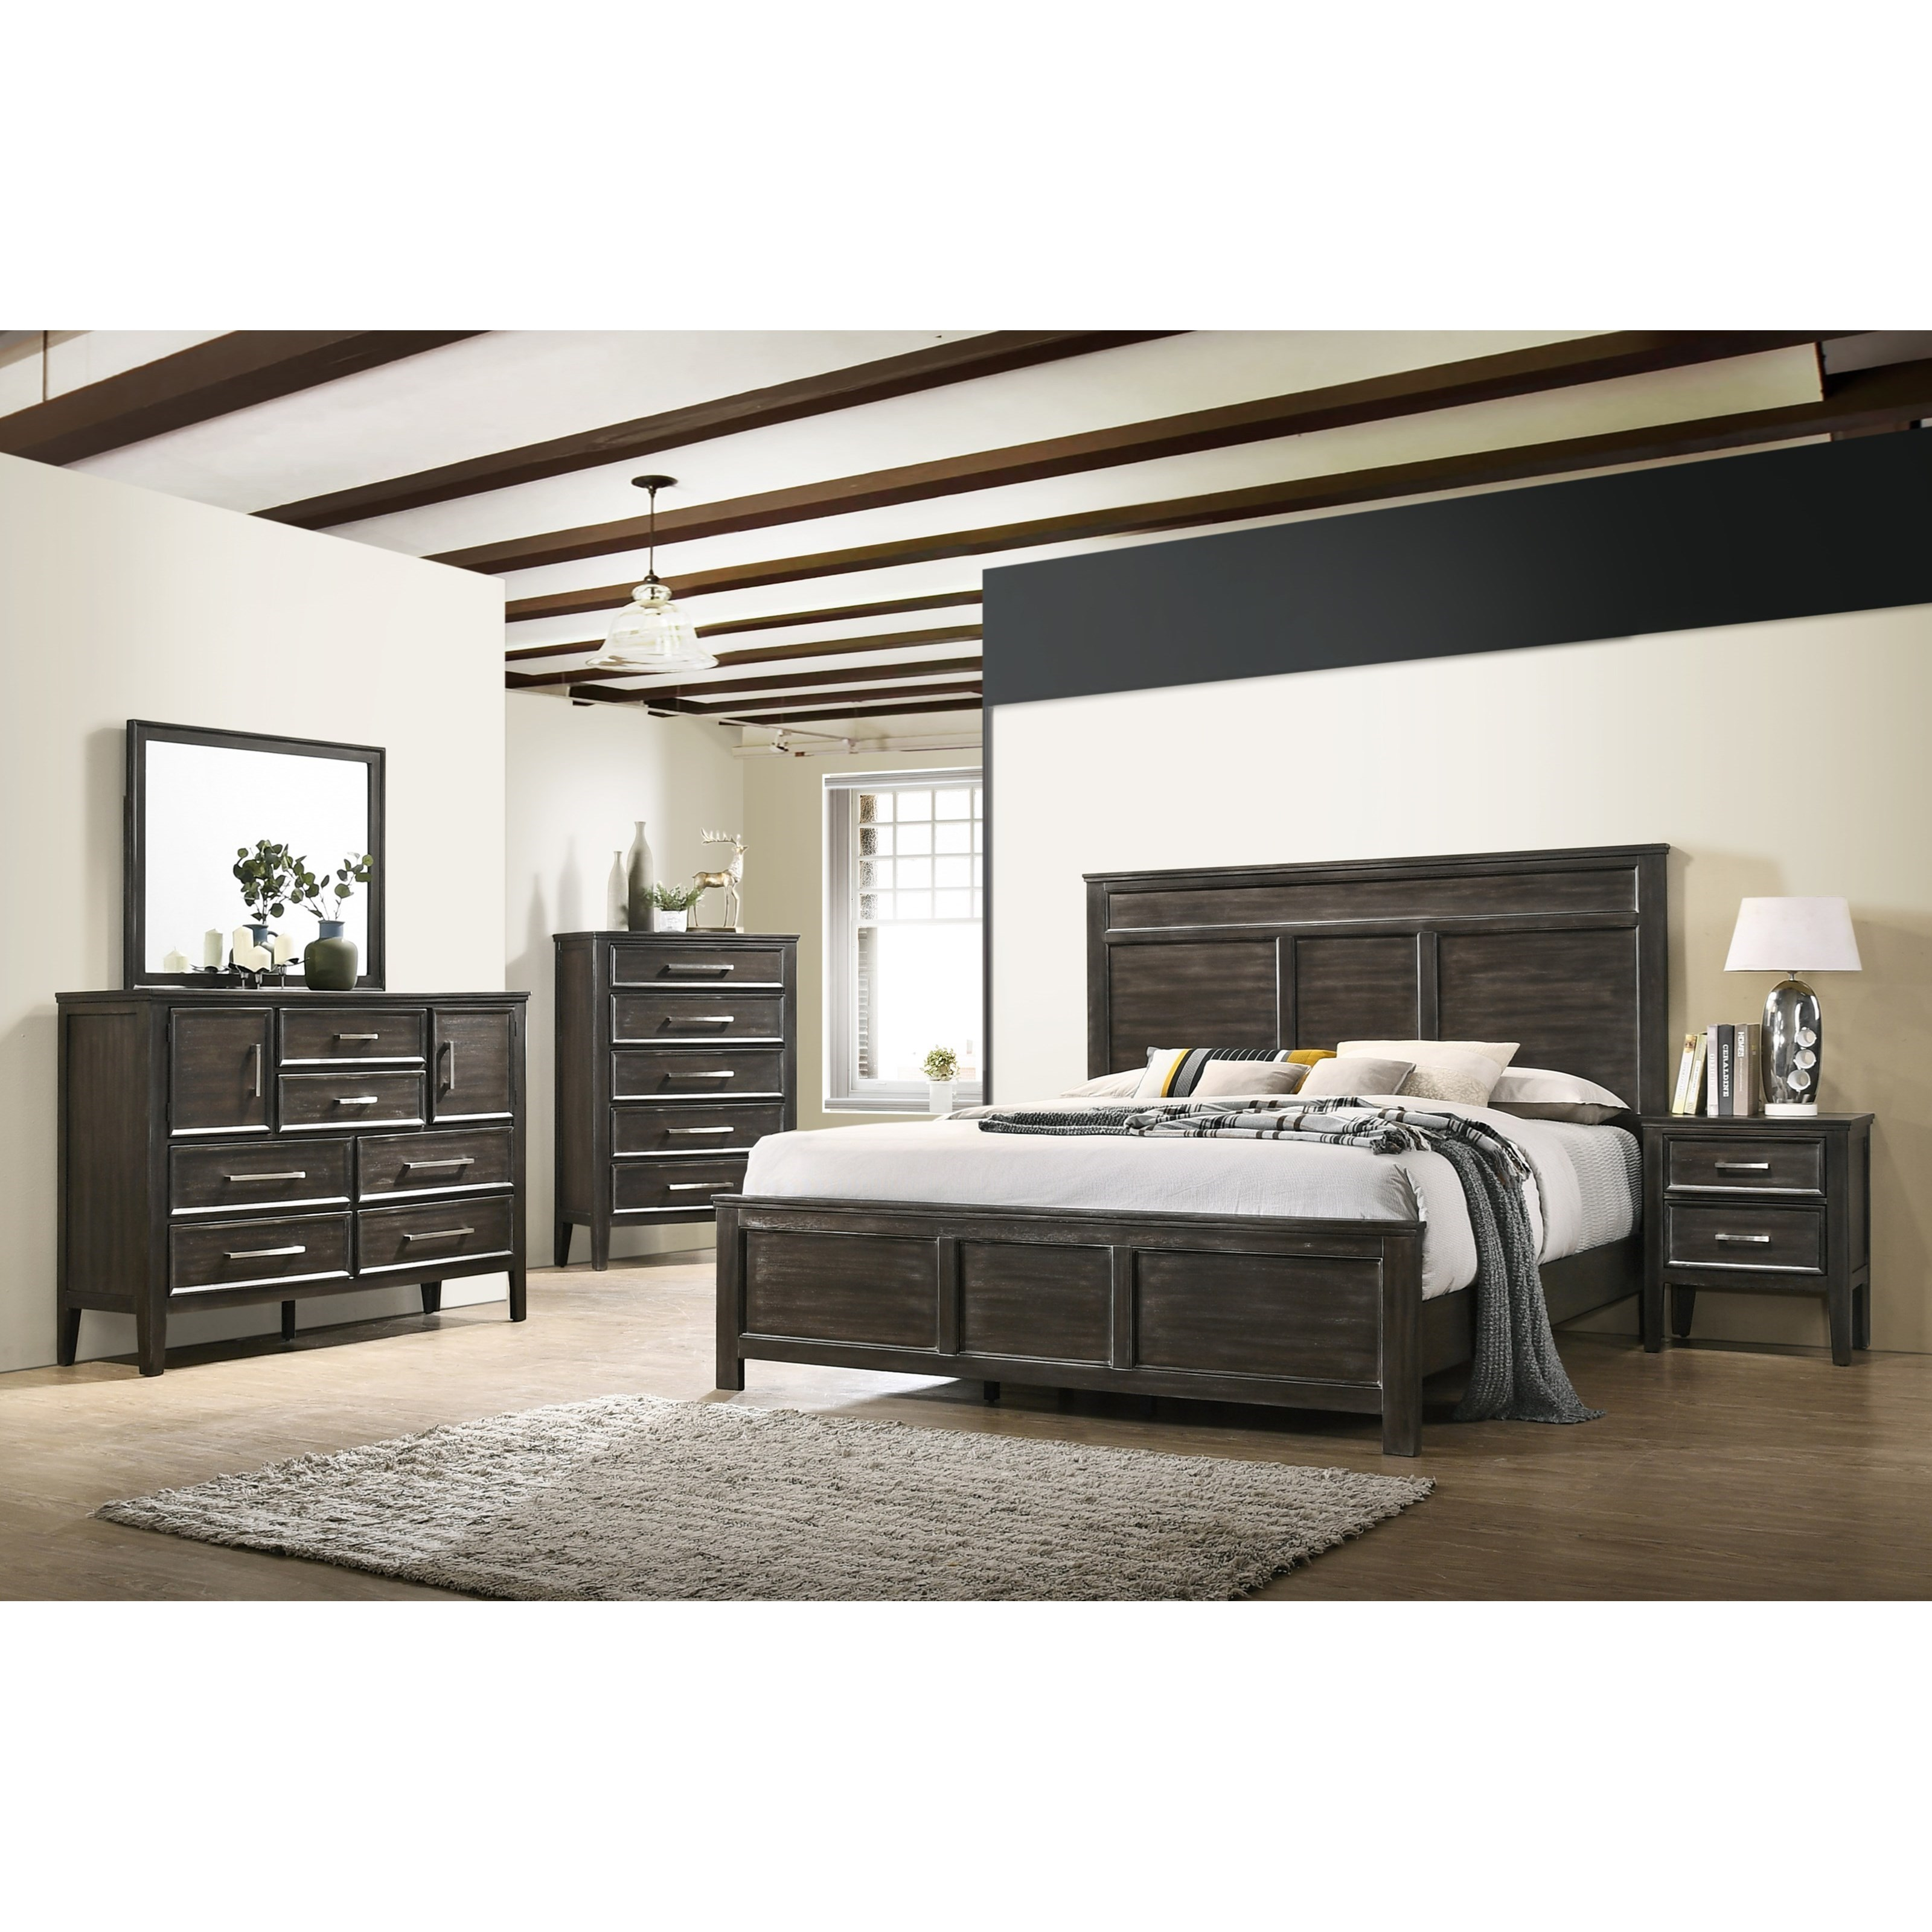 Andover Queen Bedroom Group by New Classic at Rife's Home Furniture